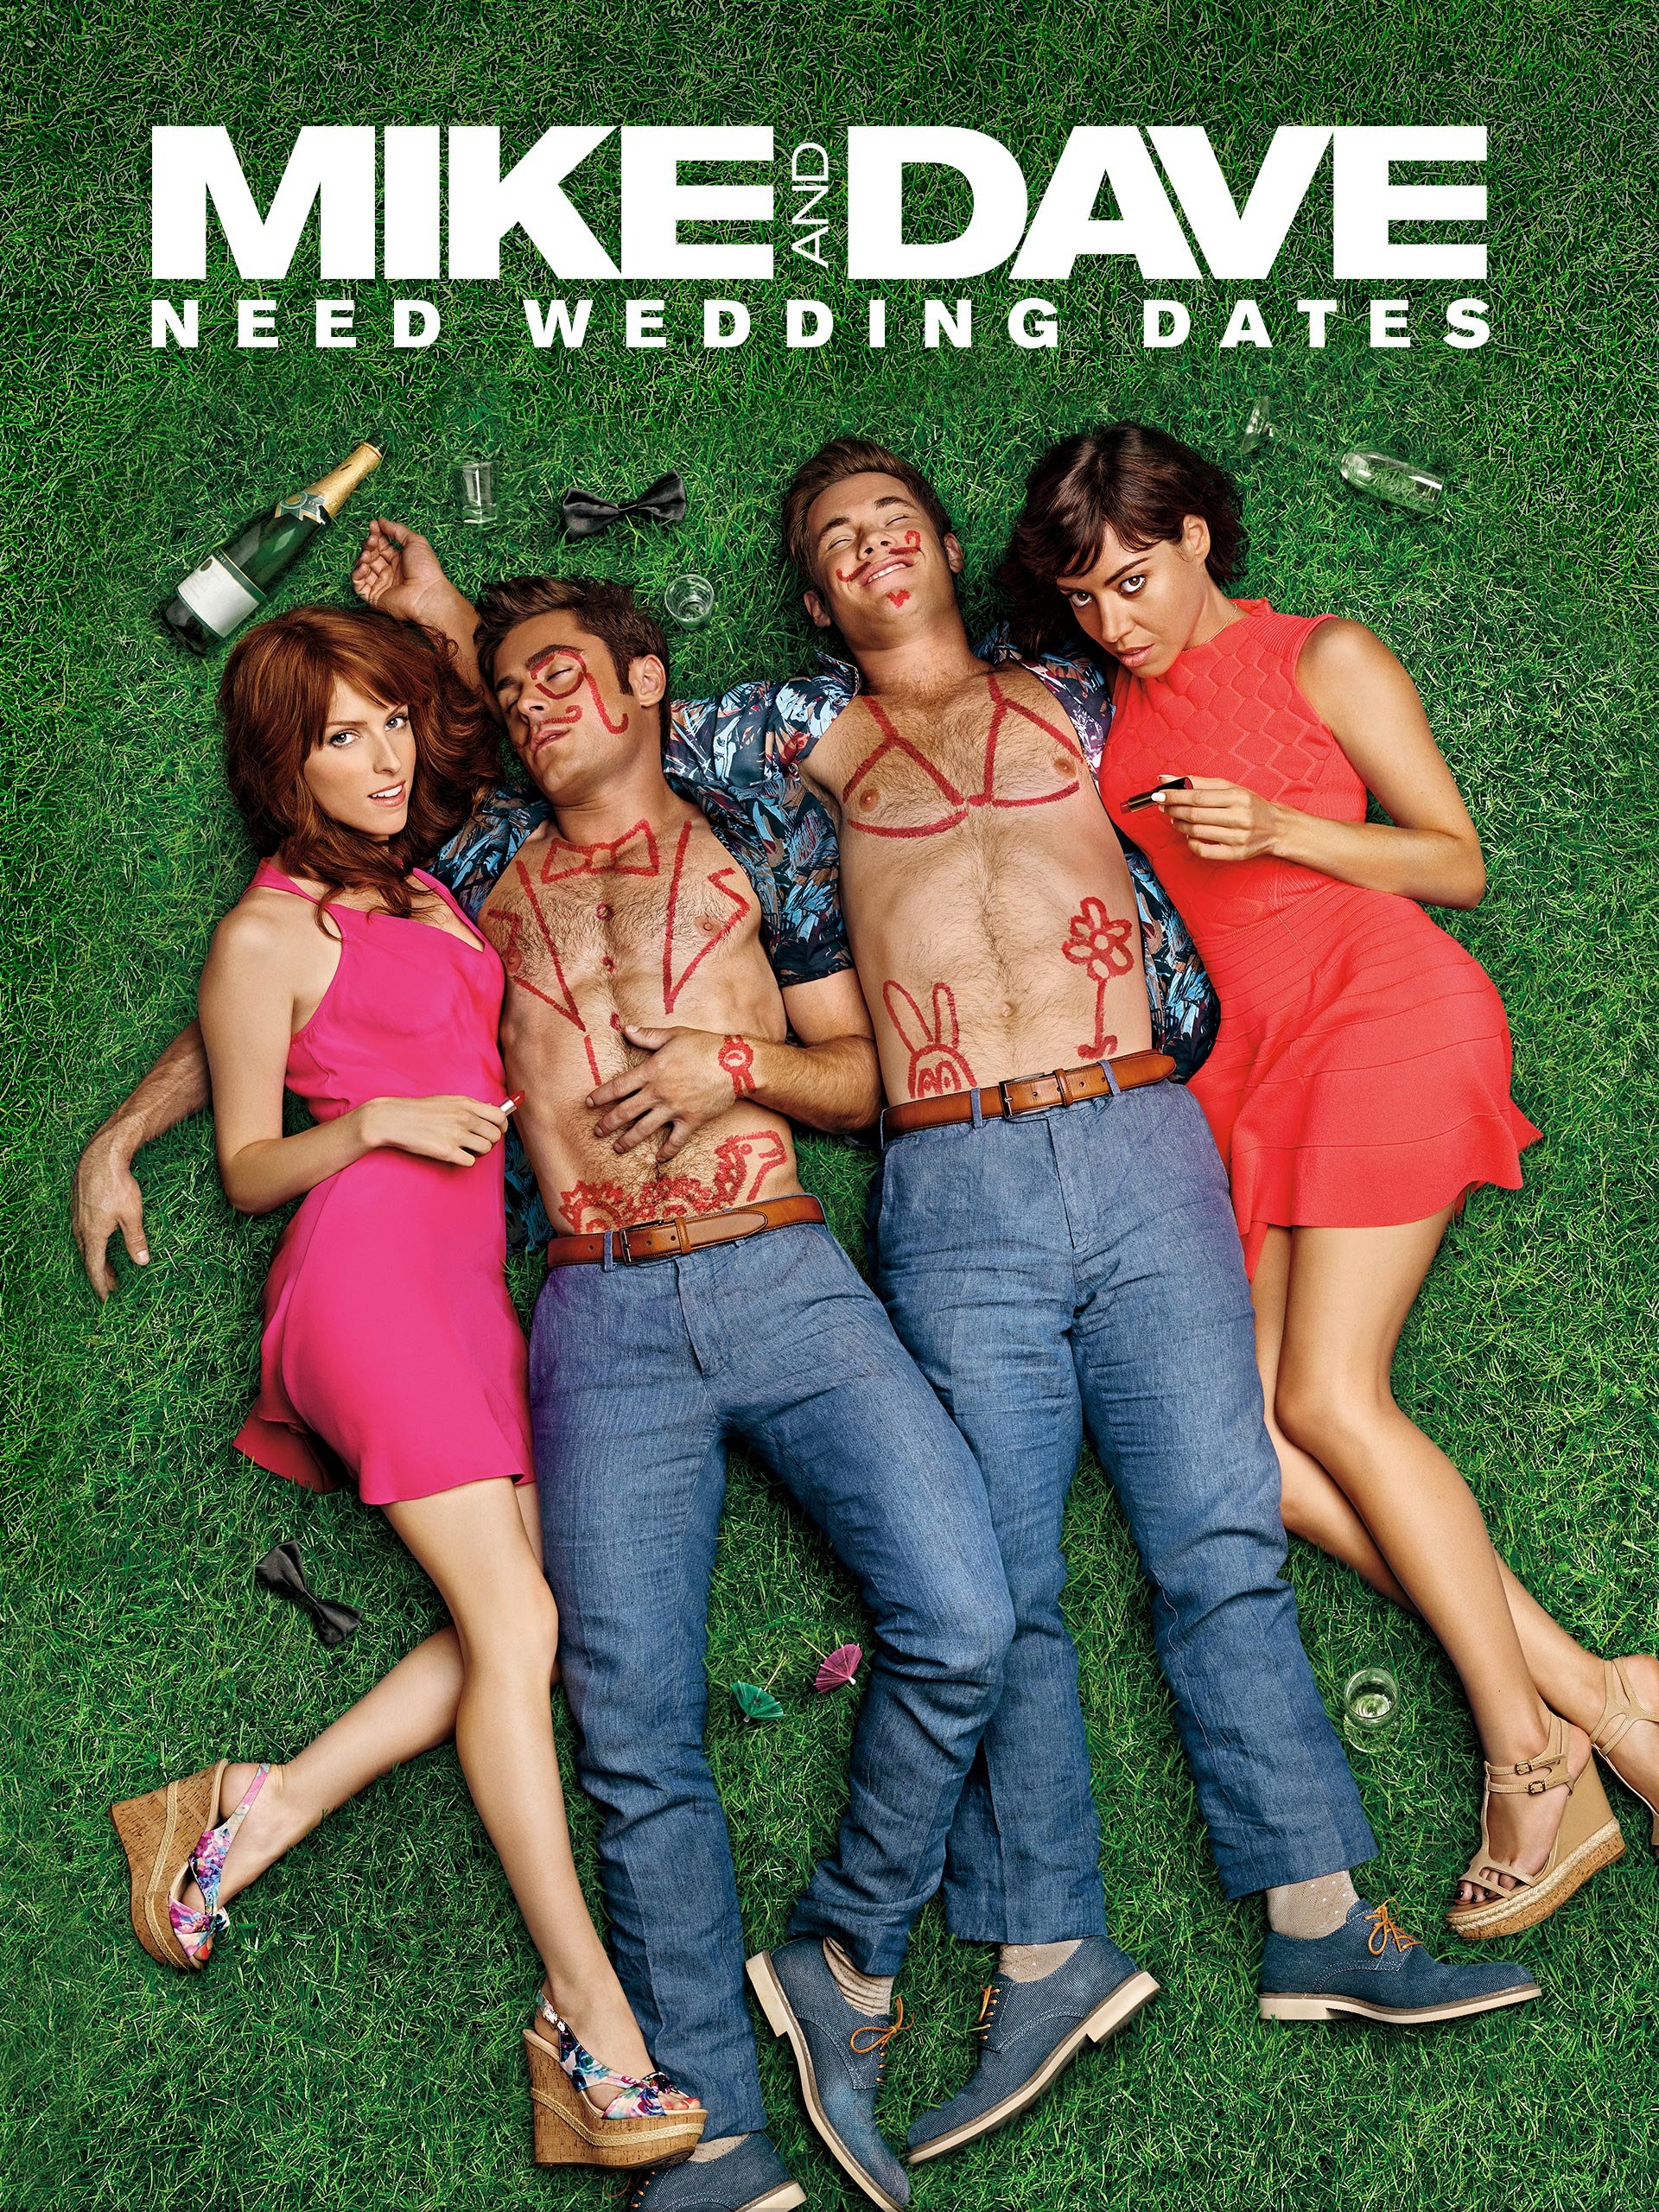 Image result for mike and dave wedding dates""